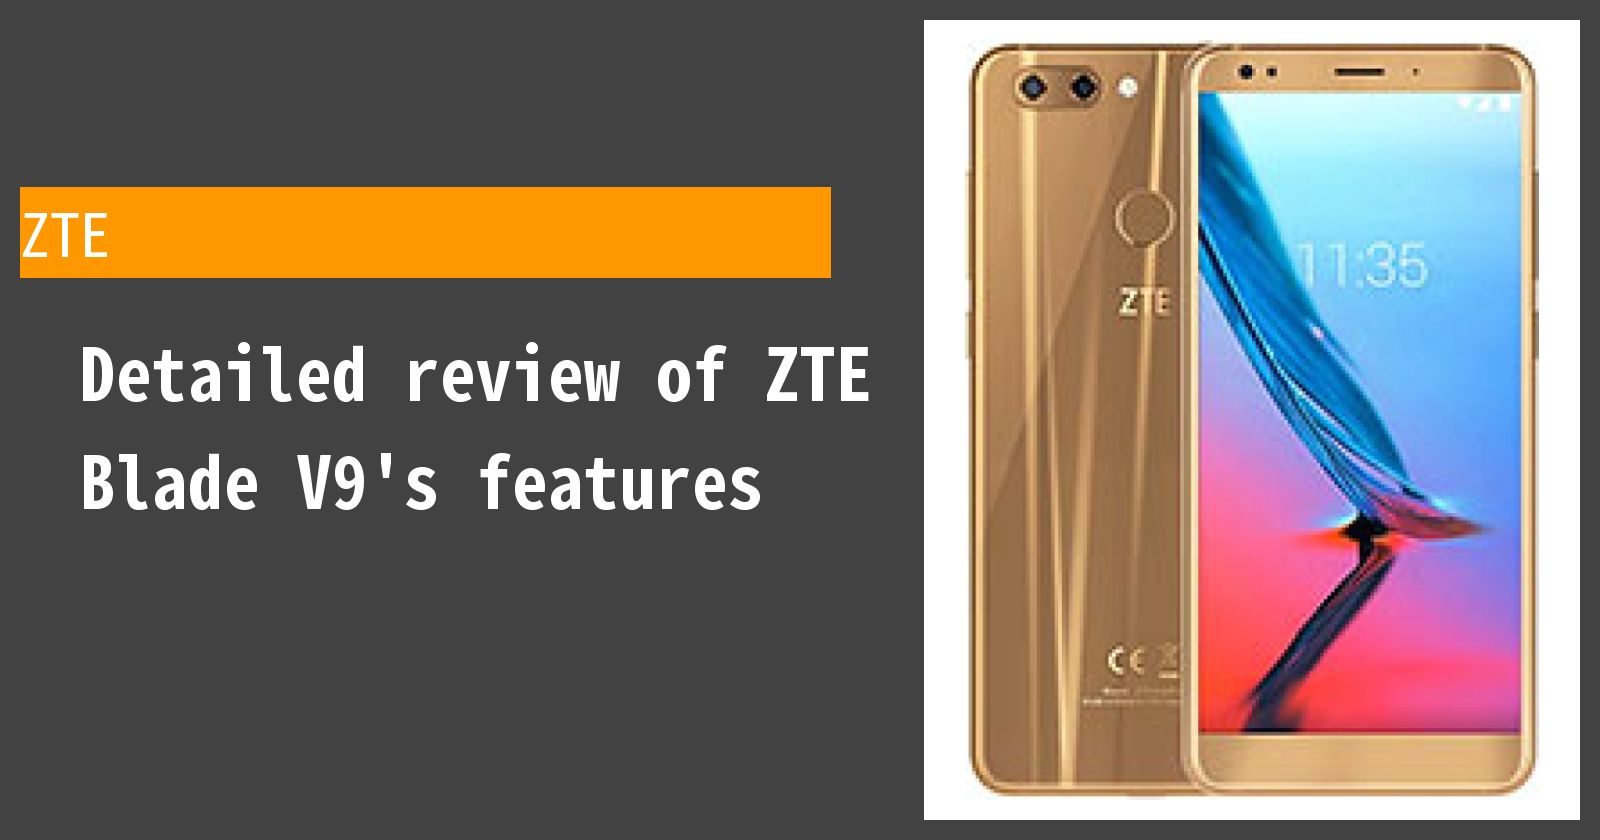 Detailed review of ZTE Blade V9's features